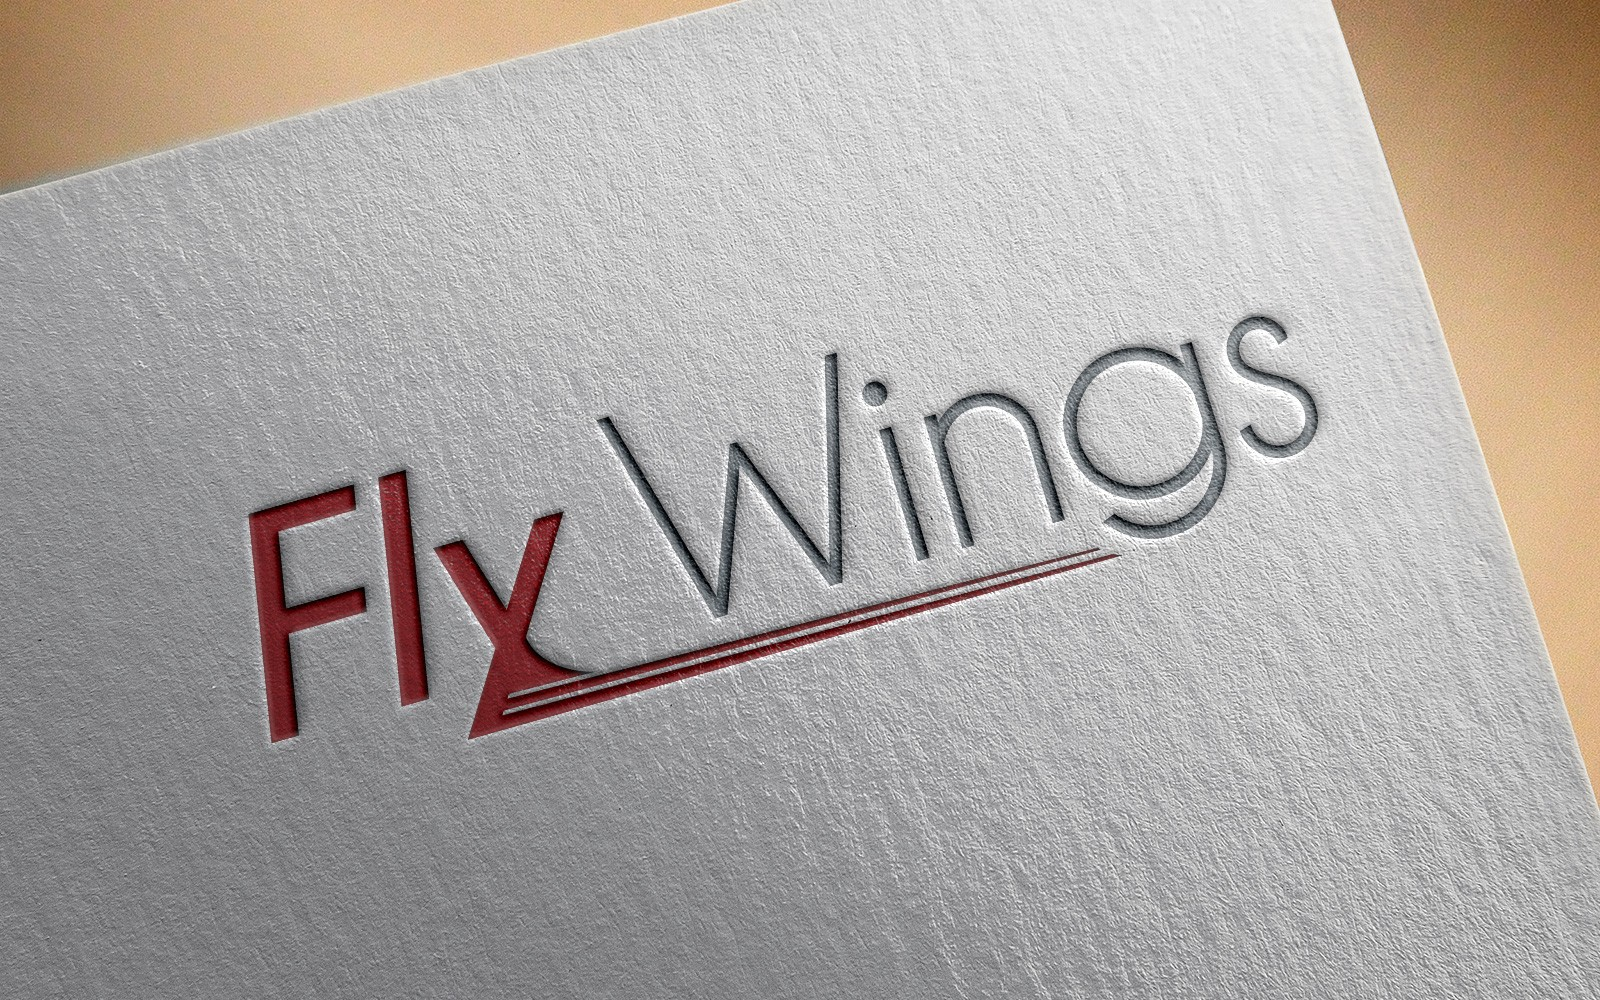 logo fly wings